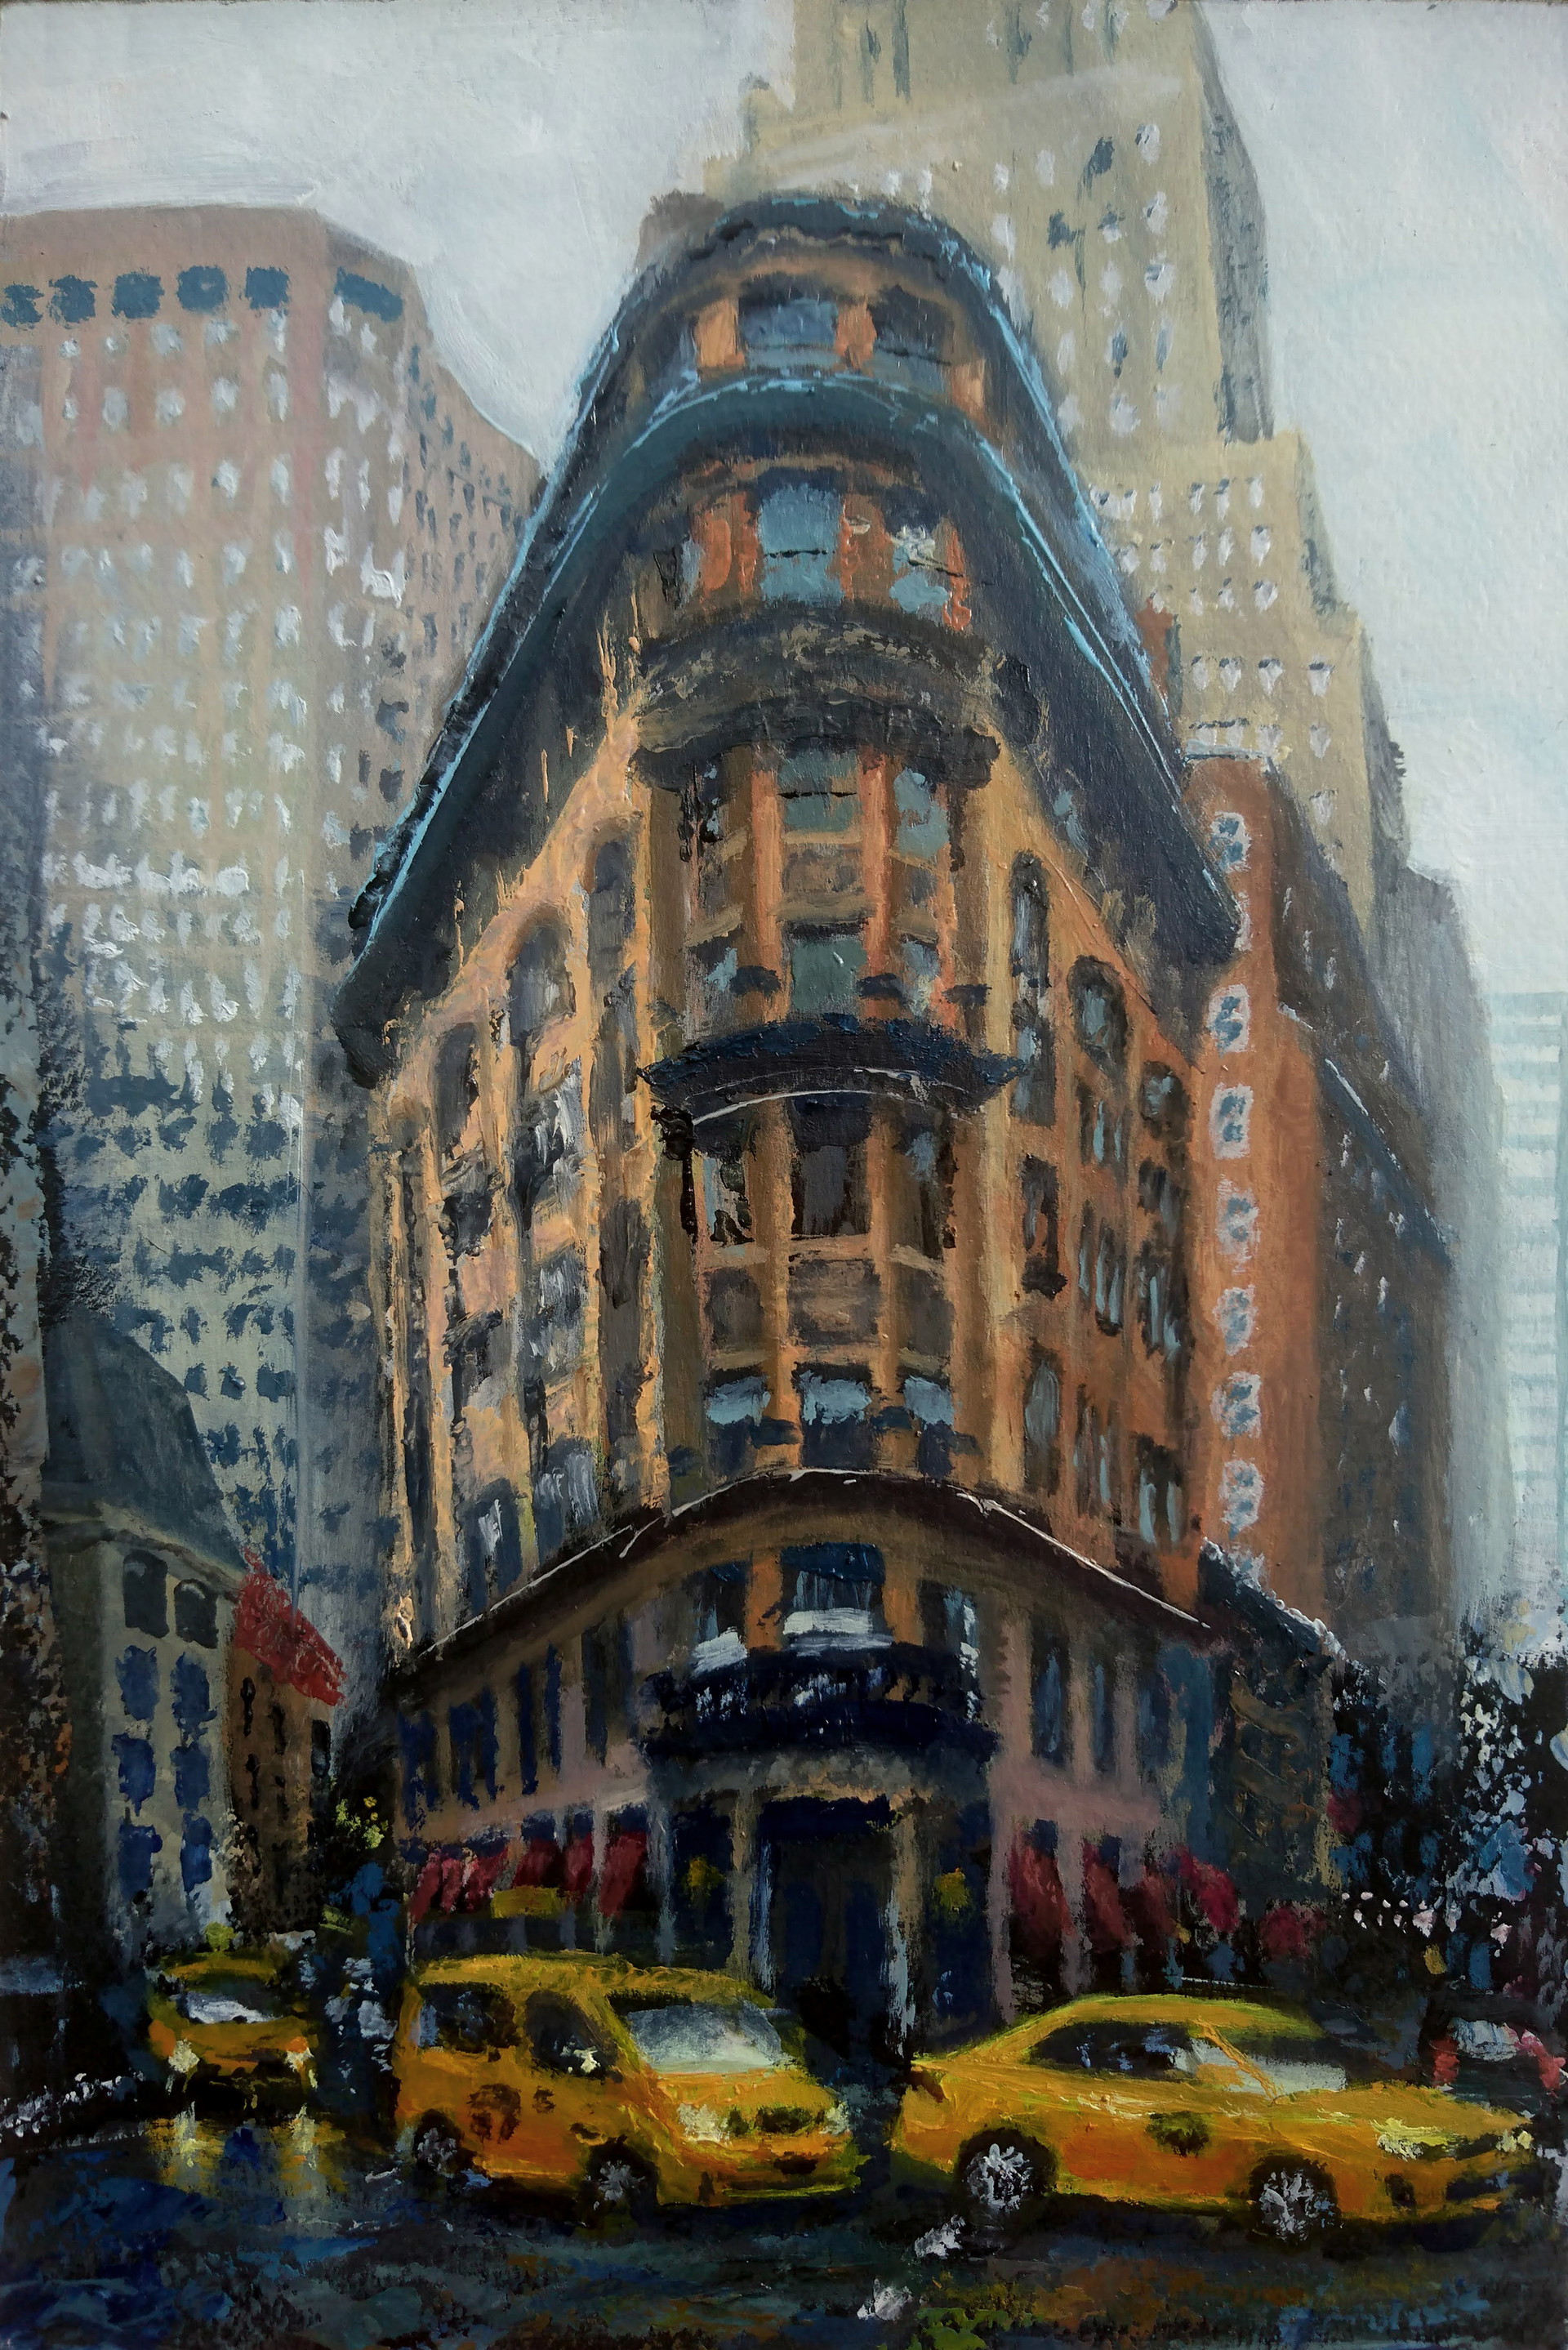 Delmonico's restaurant, New York